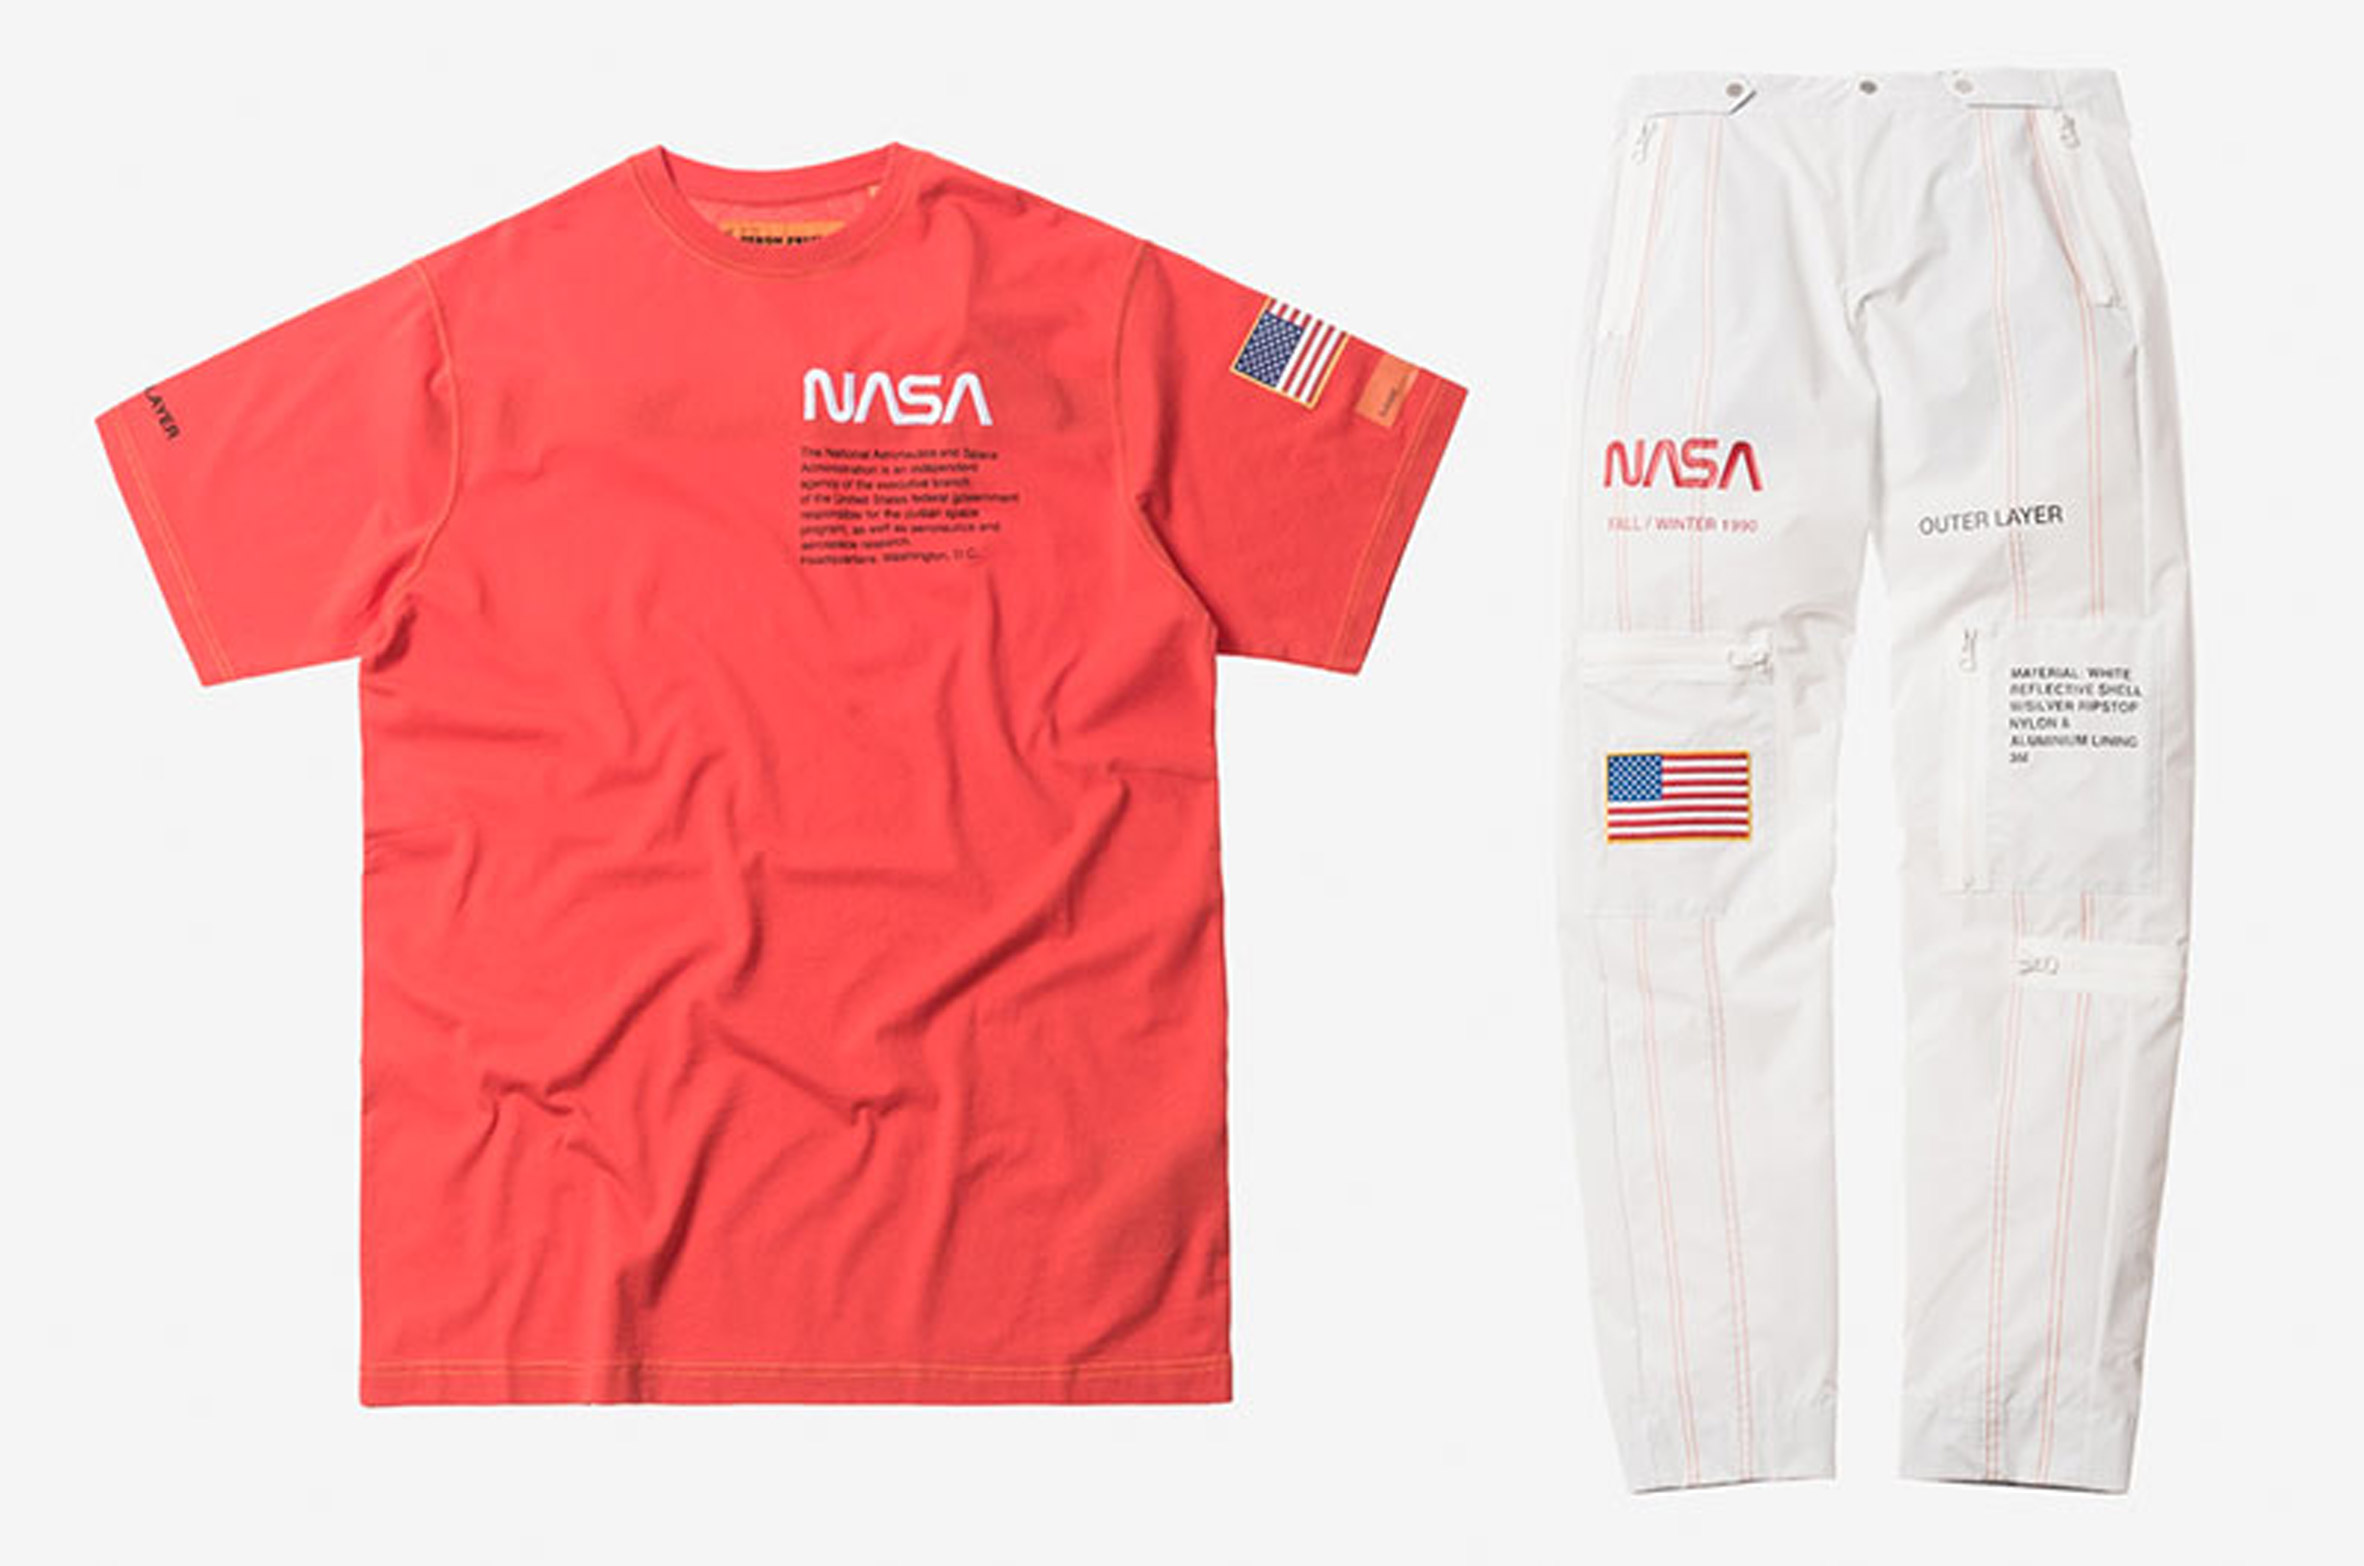 NASA inspire high fashion as Heron Preston commemorates the agency's 60th anniversary with its Capsule collection.